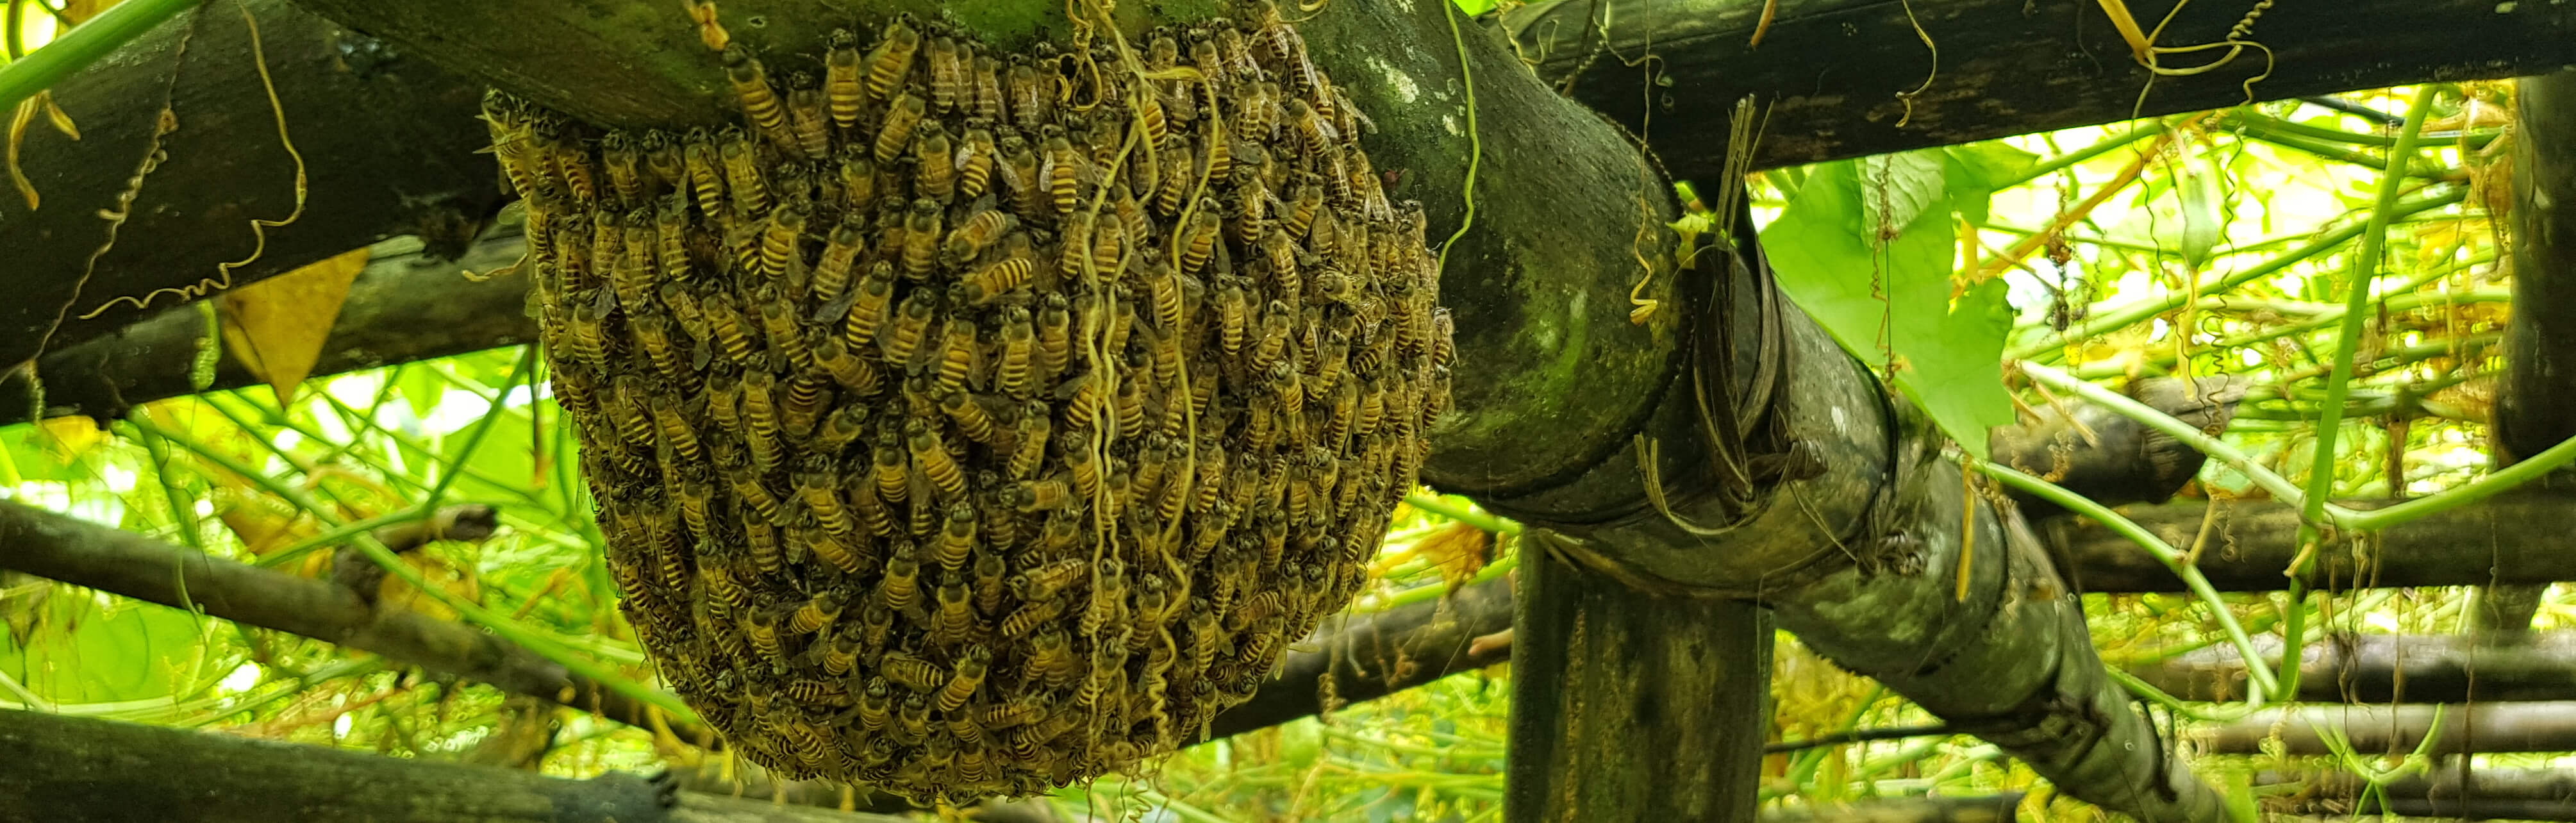 Bees on Bamboo